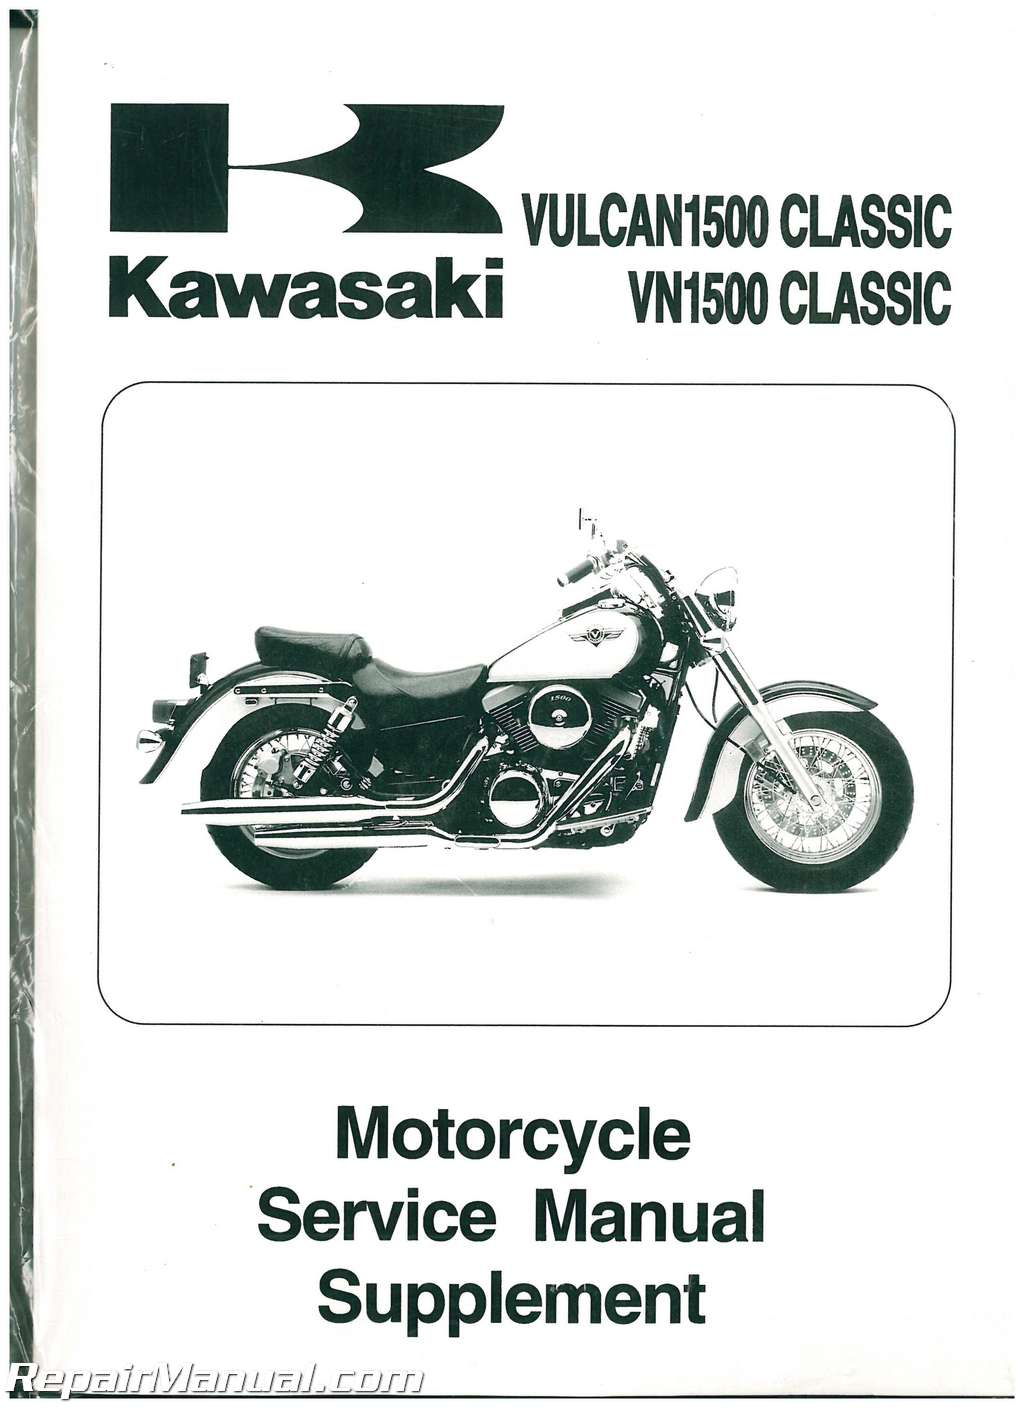 1998-2004 Kawasaki Vulcan Classic 1500 Motorcycle Service Manual Supplement